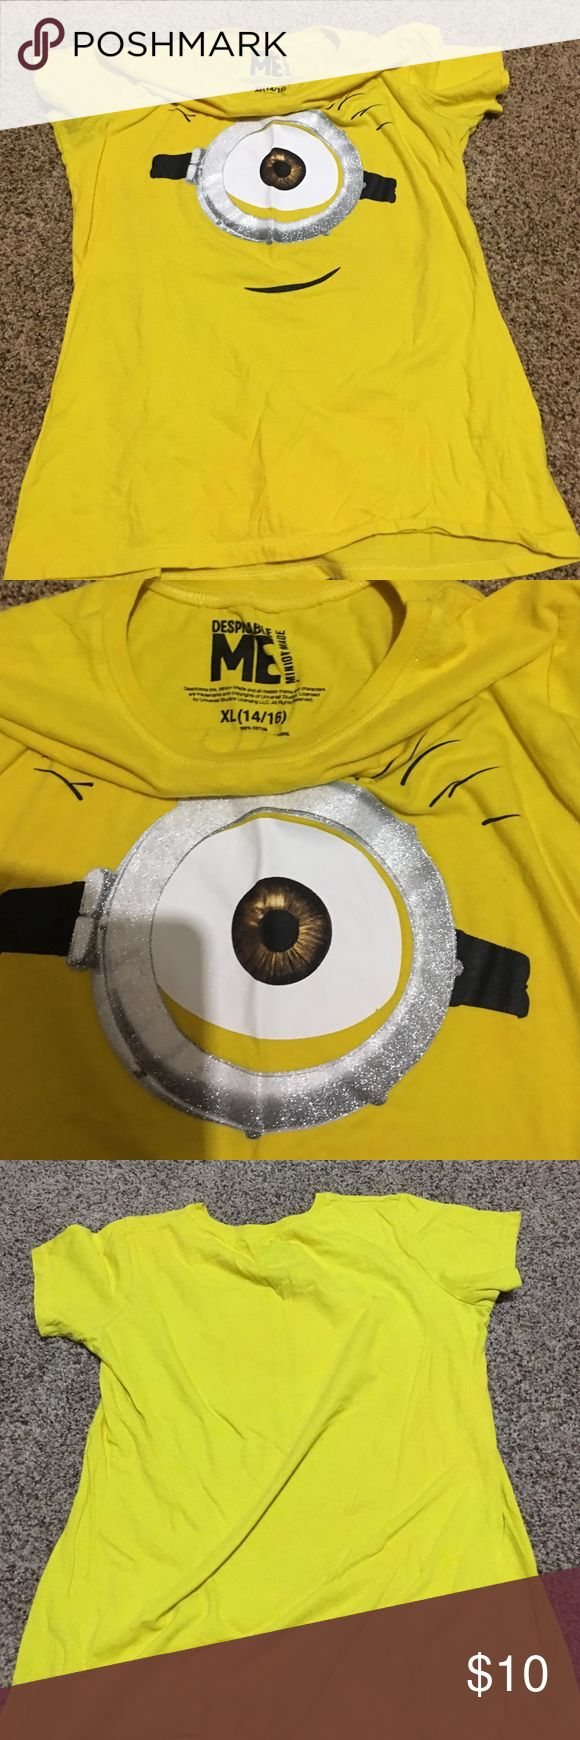 Despicable Me Minion short sleeve shirt Youth XL Super Cute Despicable Me Minion Yellow Short Sleeve Shirt Size Junior XL or 14/16. Despicable Me Tops Tees - Short Sleeve